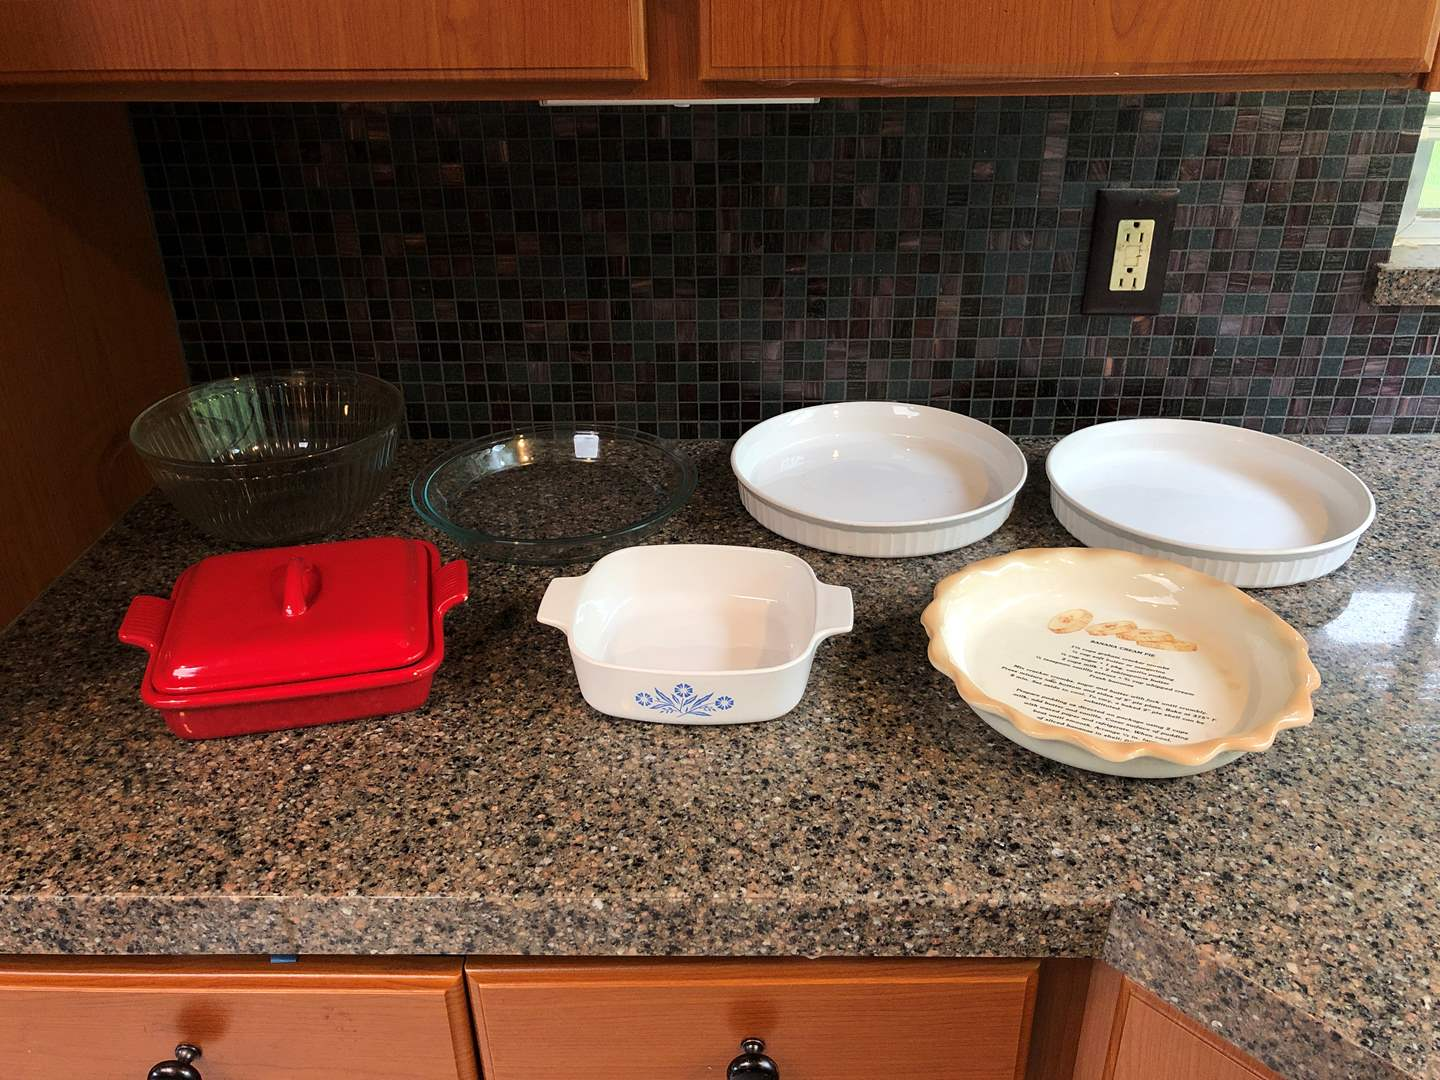 Lot # 65 - Misc. Selection of Corning Ware Baking Dishes, Pyrex Mixing Bowl, Pie Plate & More..  (main image)